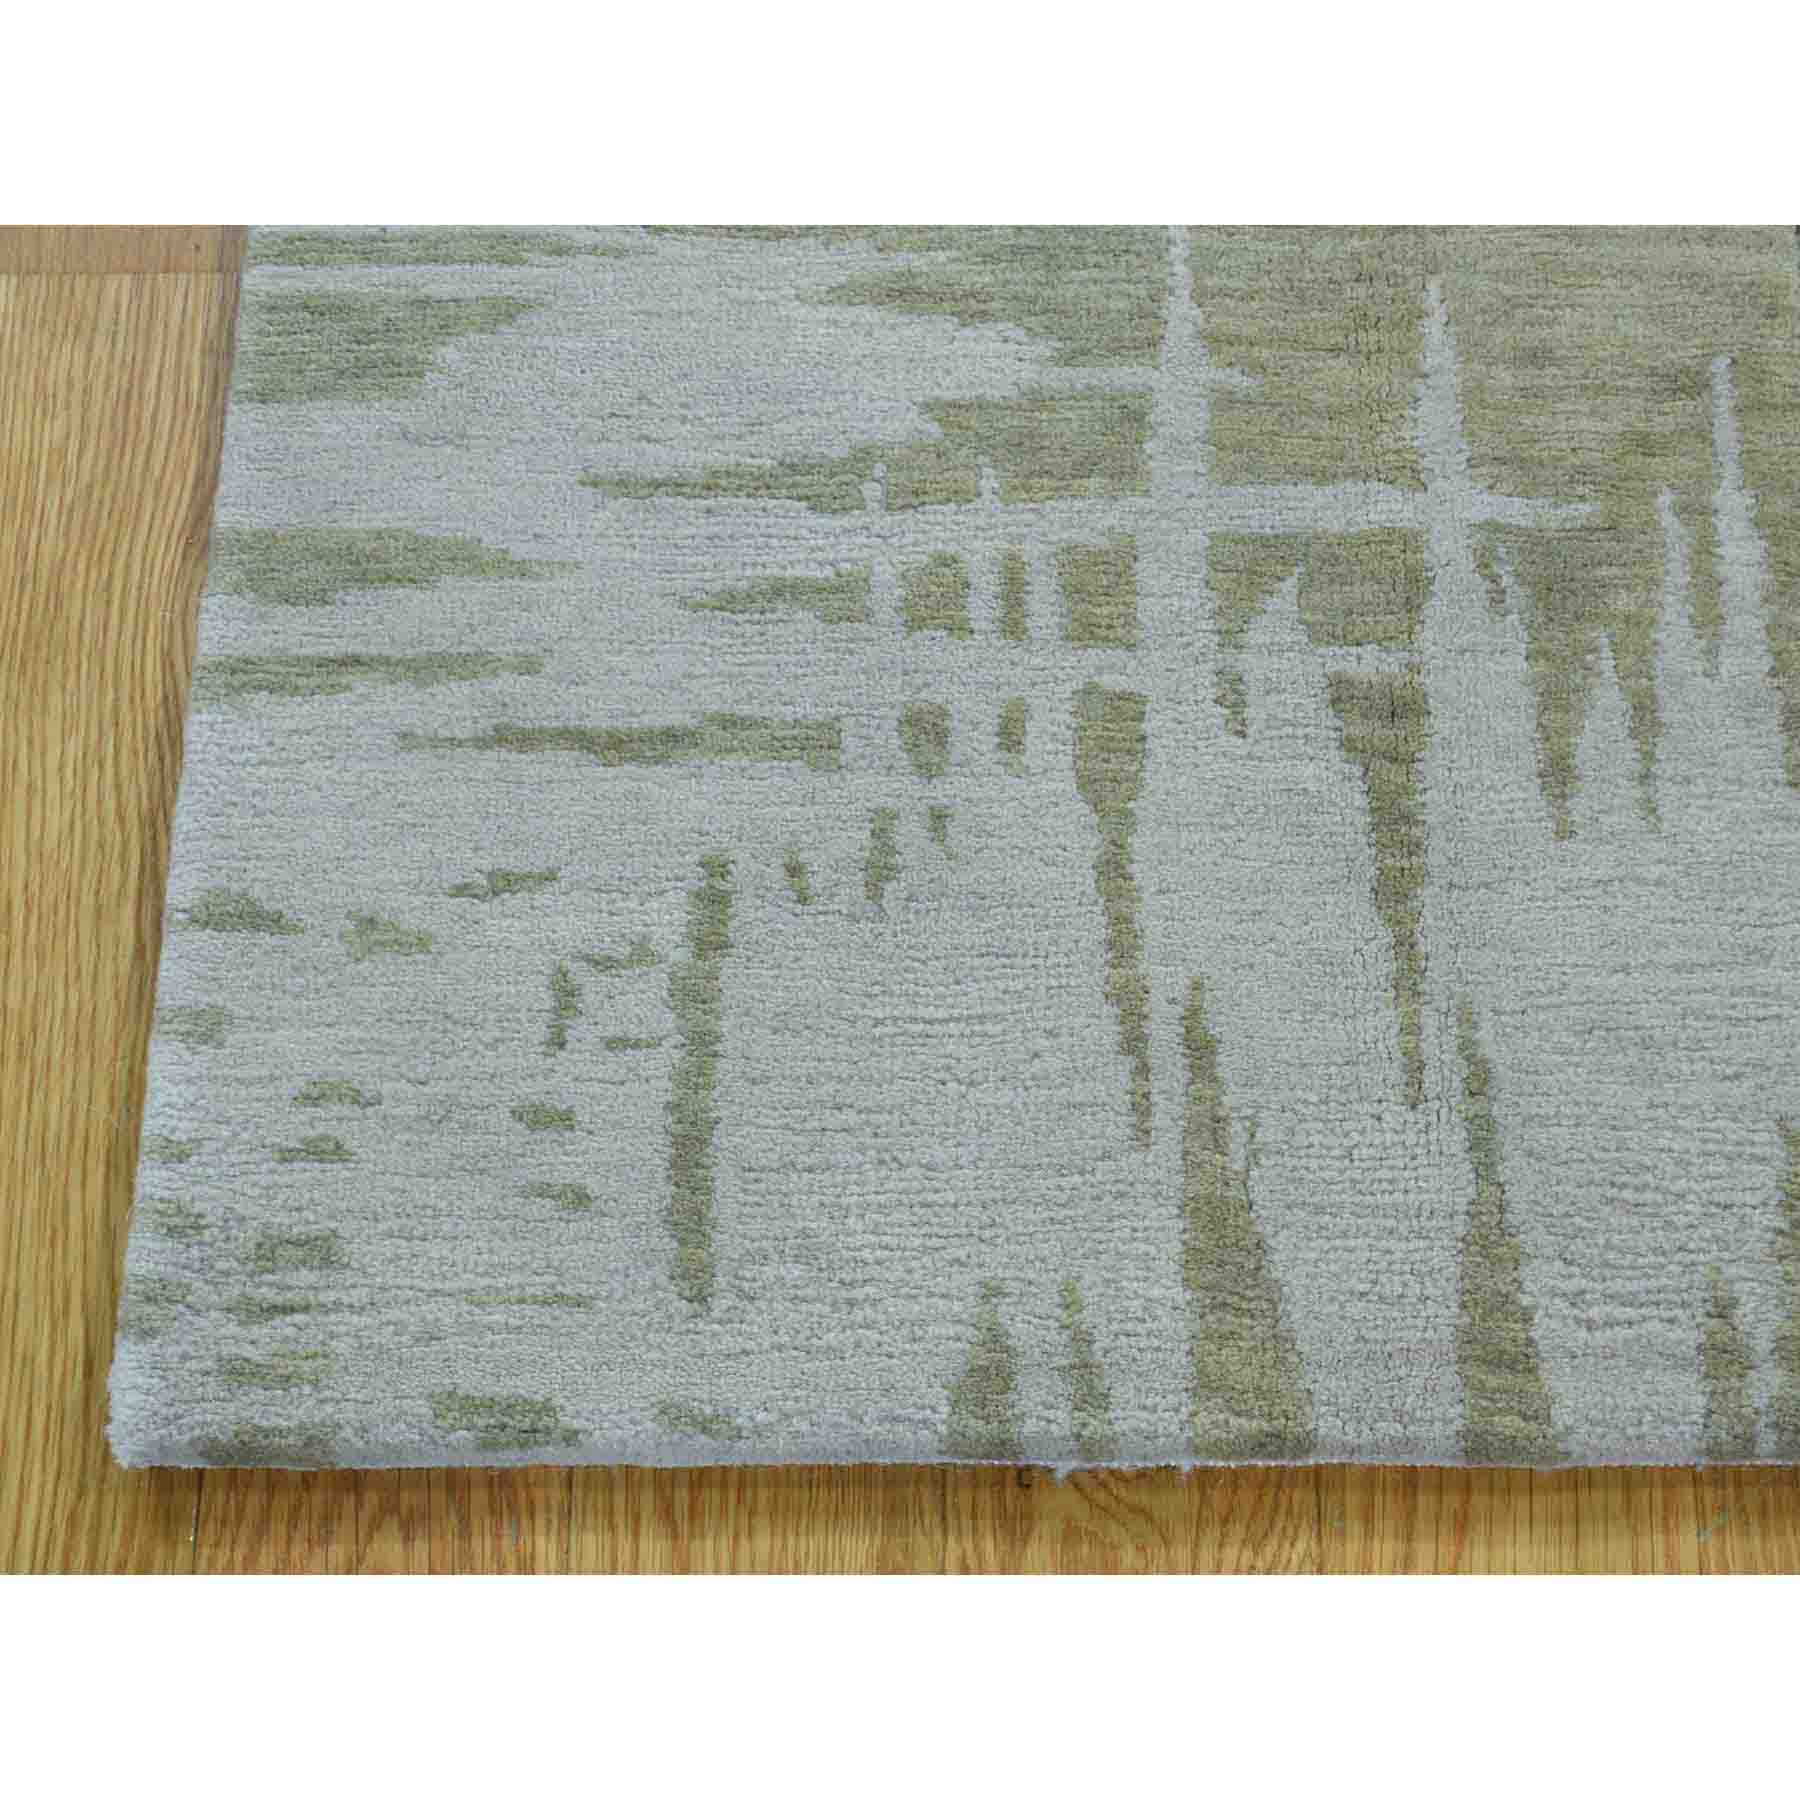 Modern-and-Contemporary-Hand-Knotted-Rug-181025